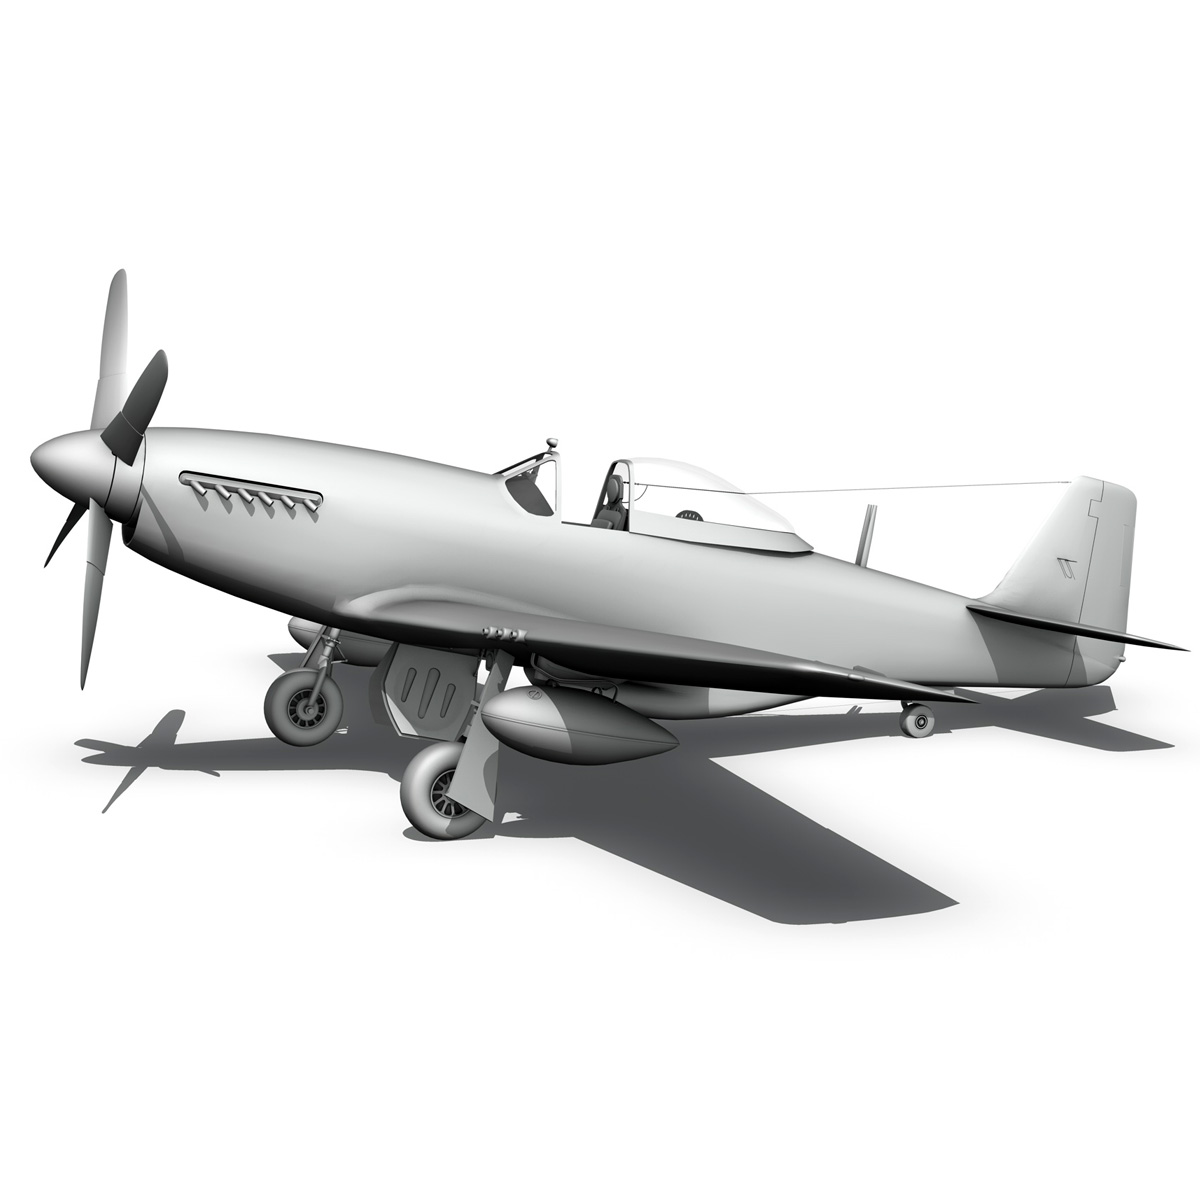 north american p-51d mustang – gunfighter 3d model fbx c4d lwo obj 269587